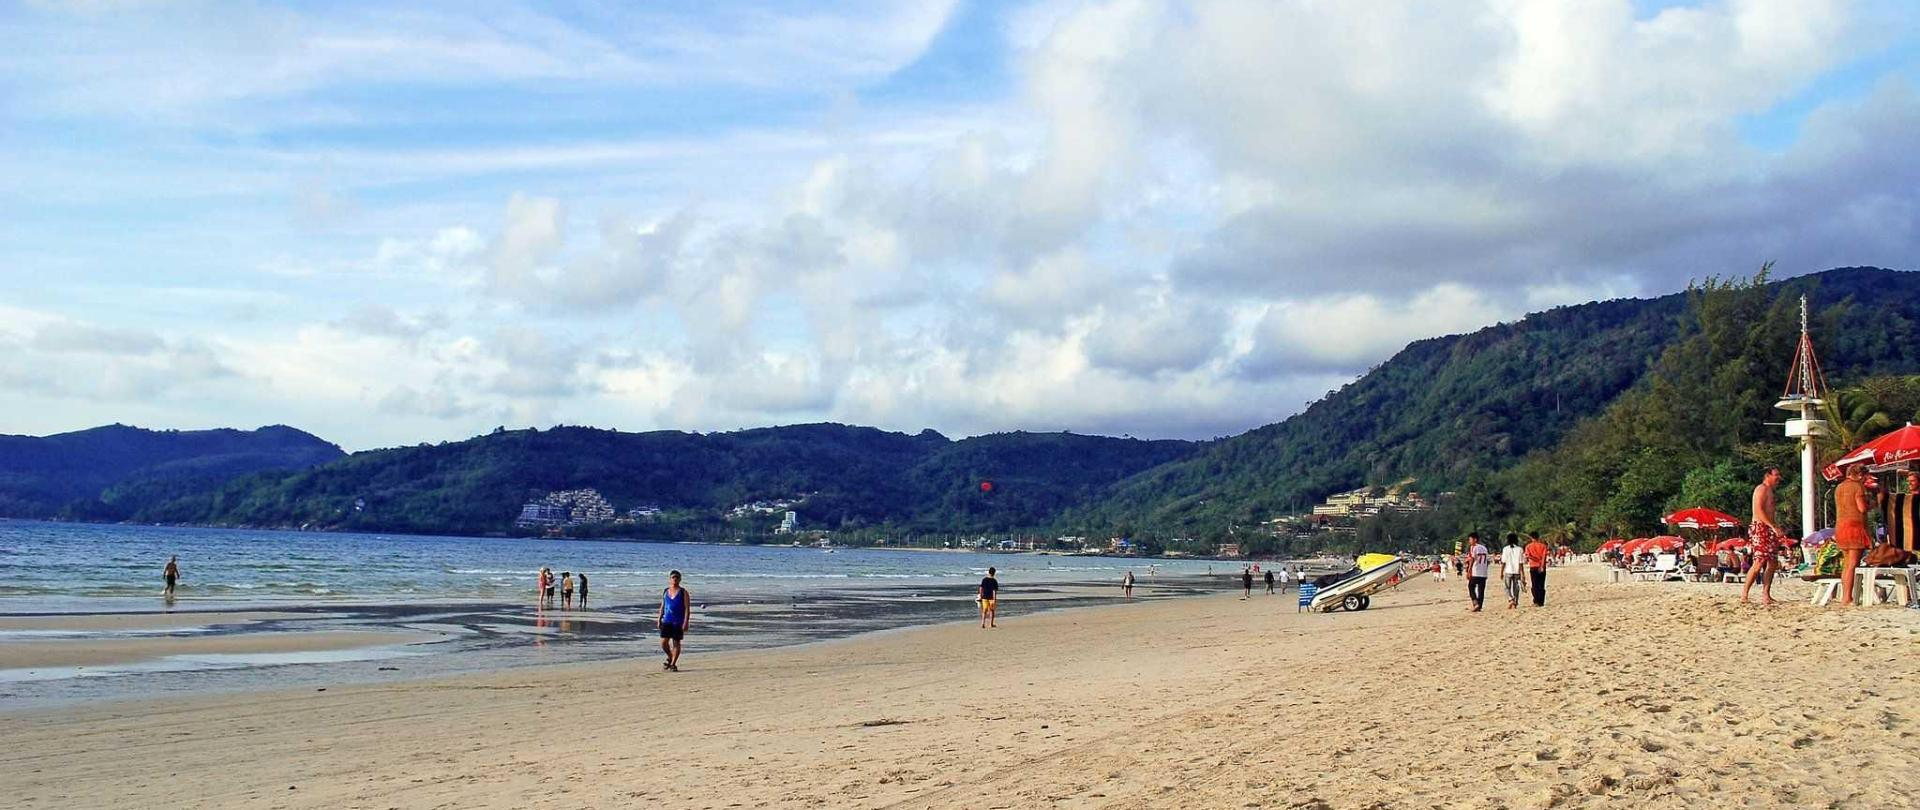 patong-beach-original-7600-1.jpg